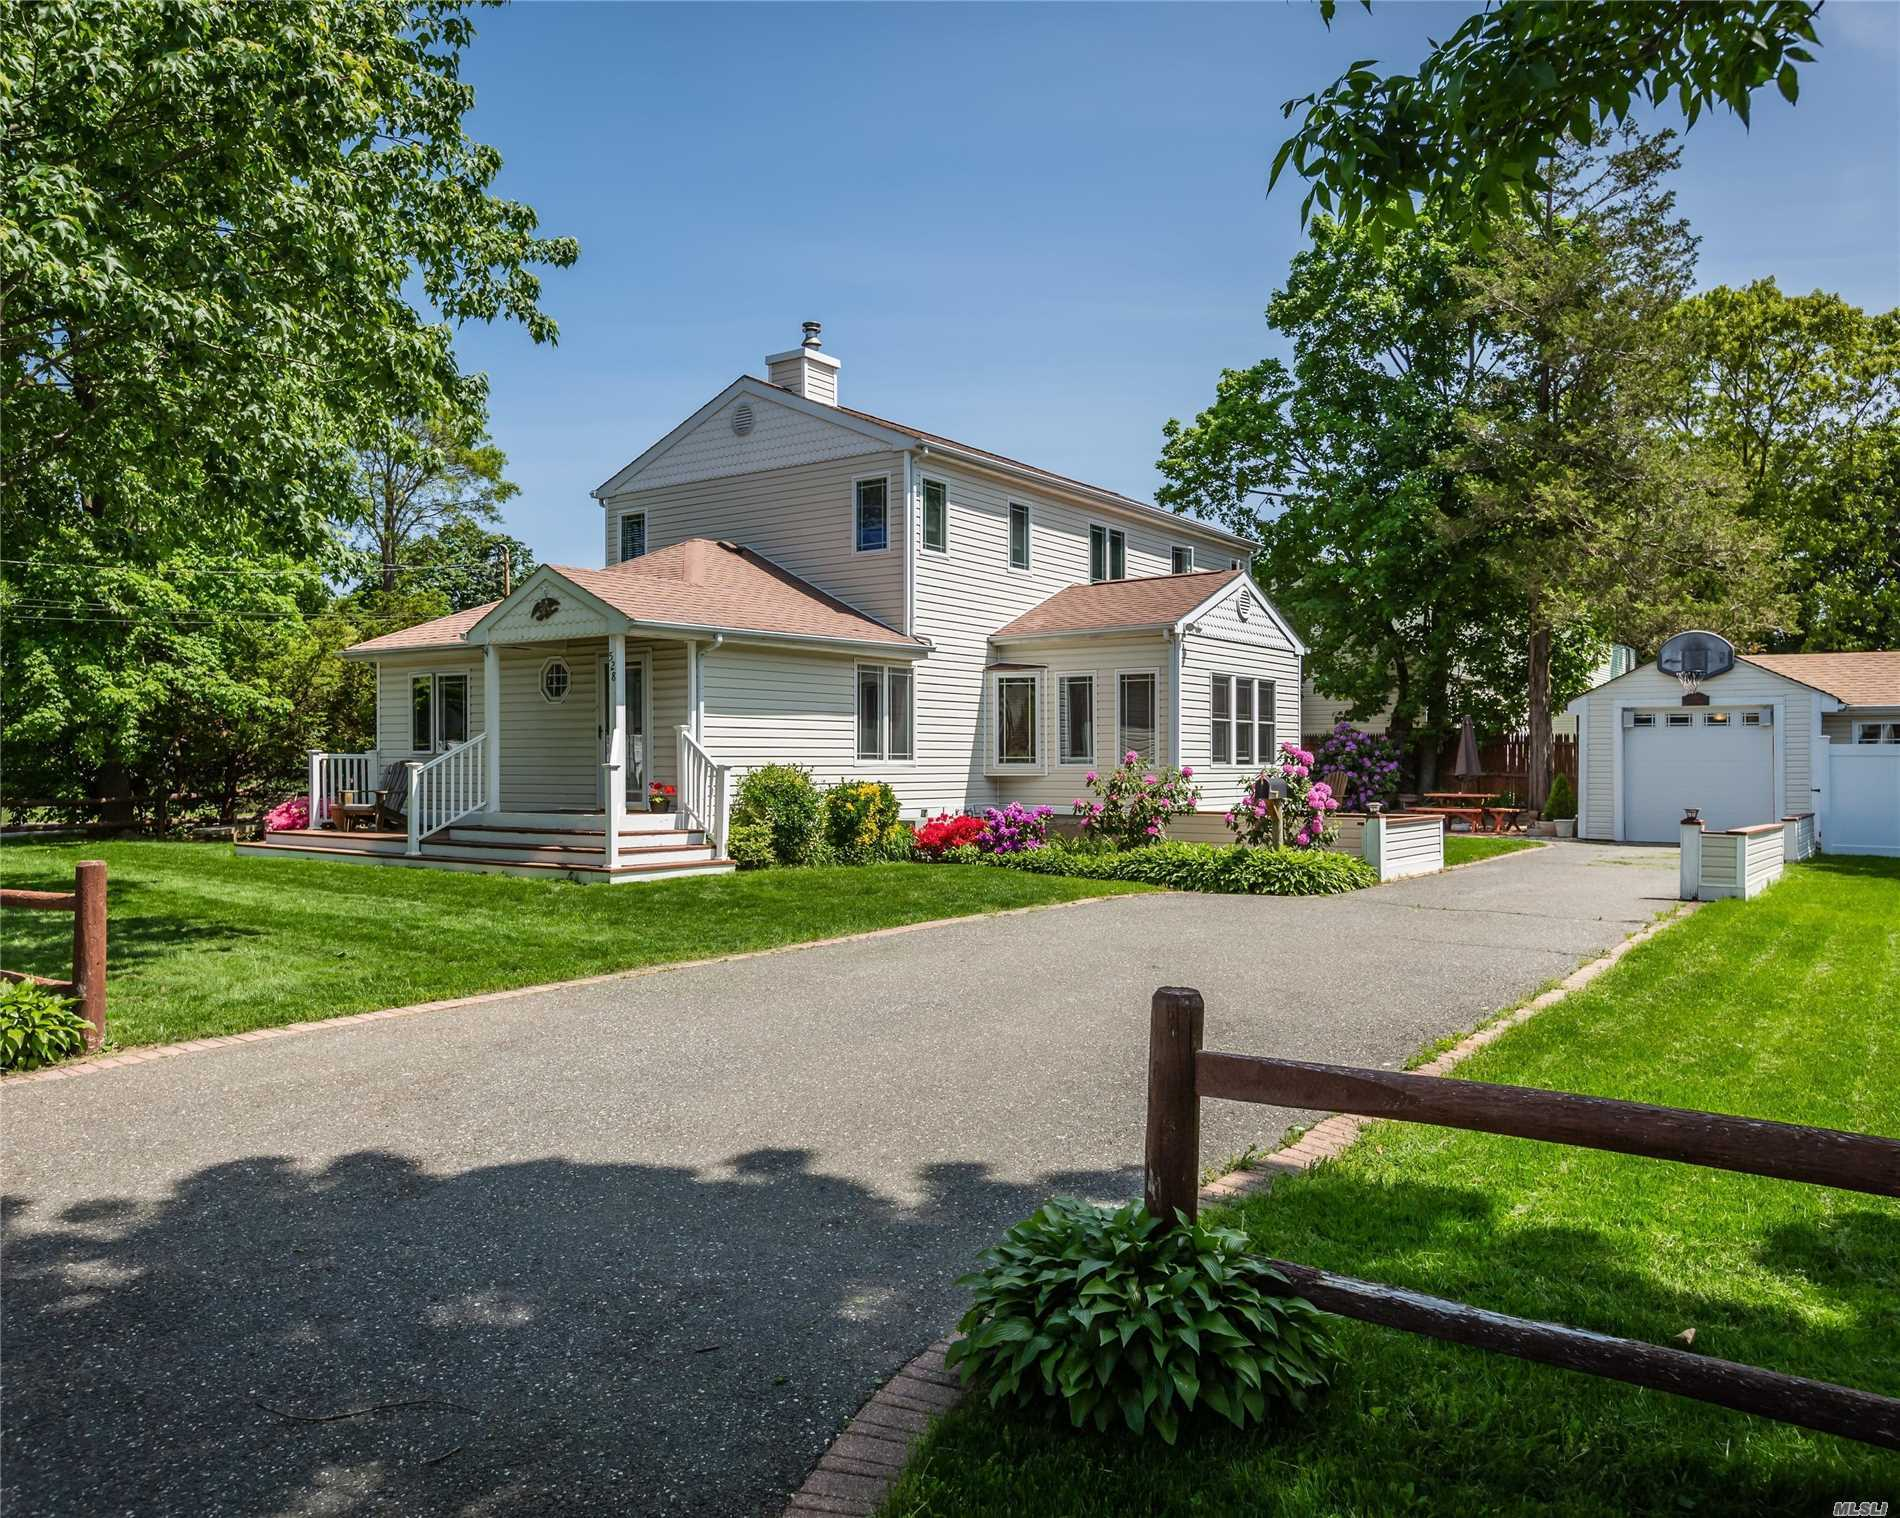 528 3rd St - E. Northport, New York